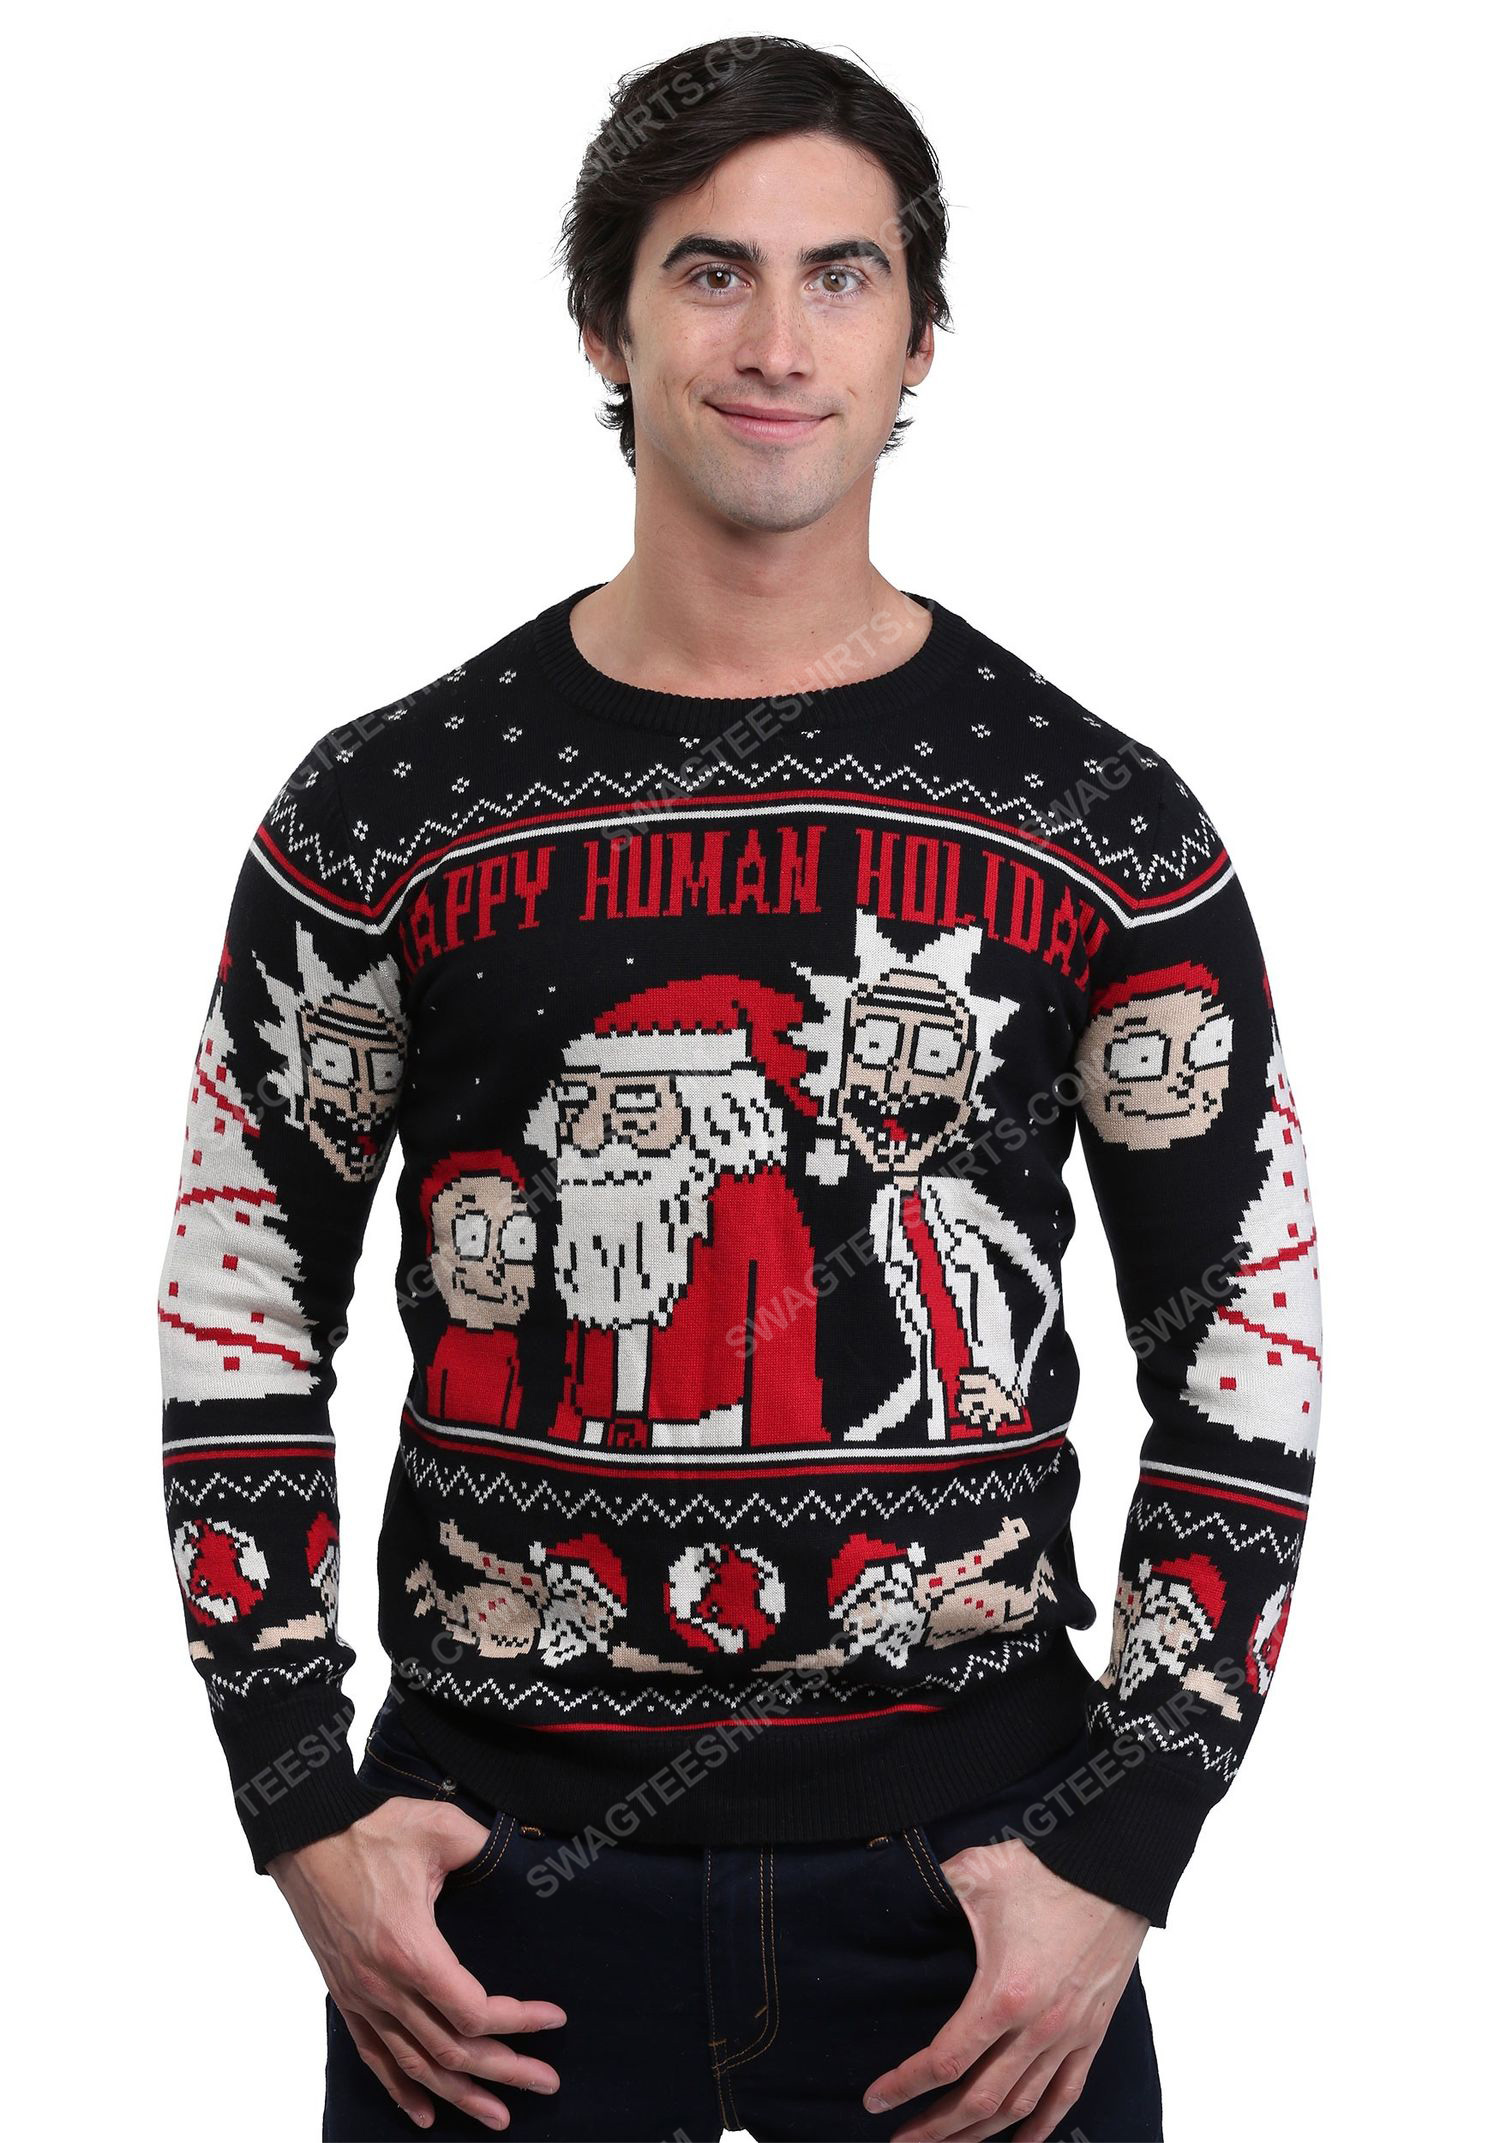 Tv show rick and morty happy human holiday ugly christmas sweater